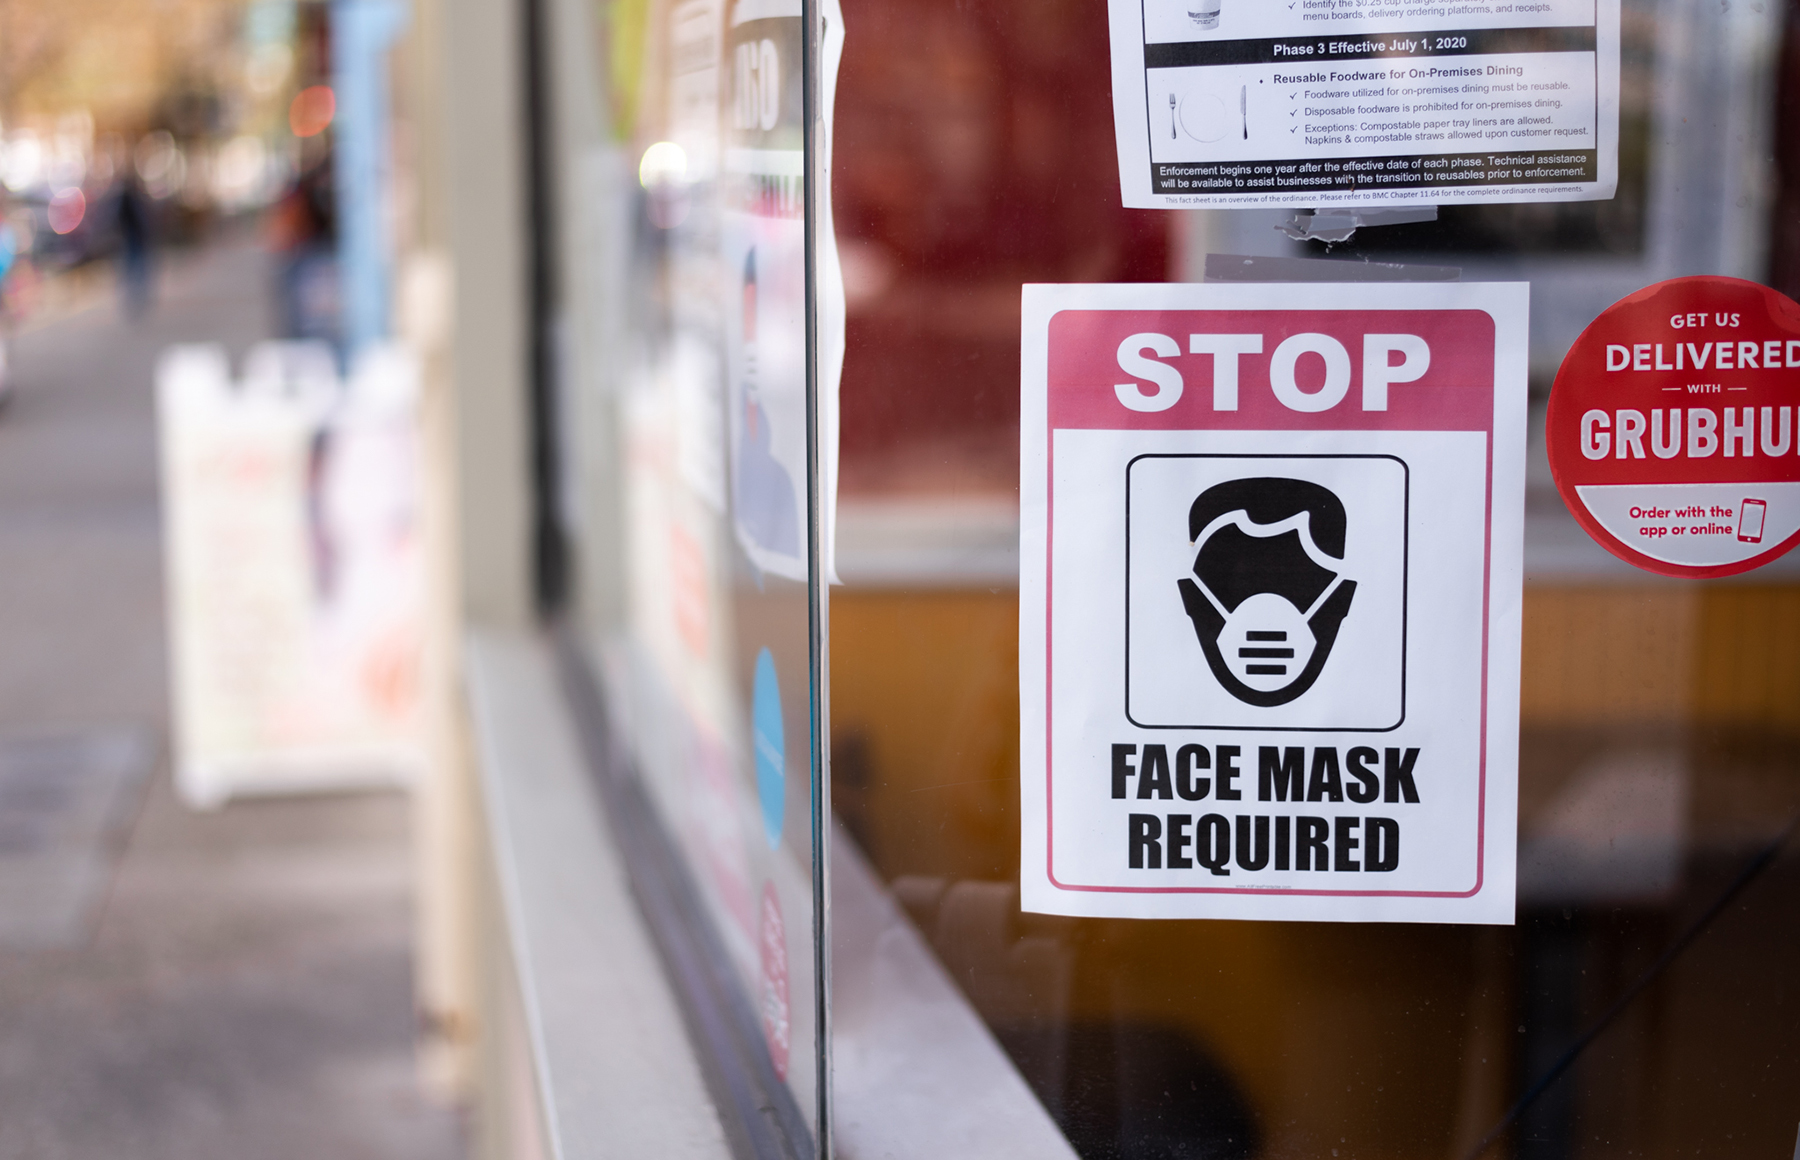 CA to implement new CDC mask guidelines beginning June 15